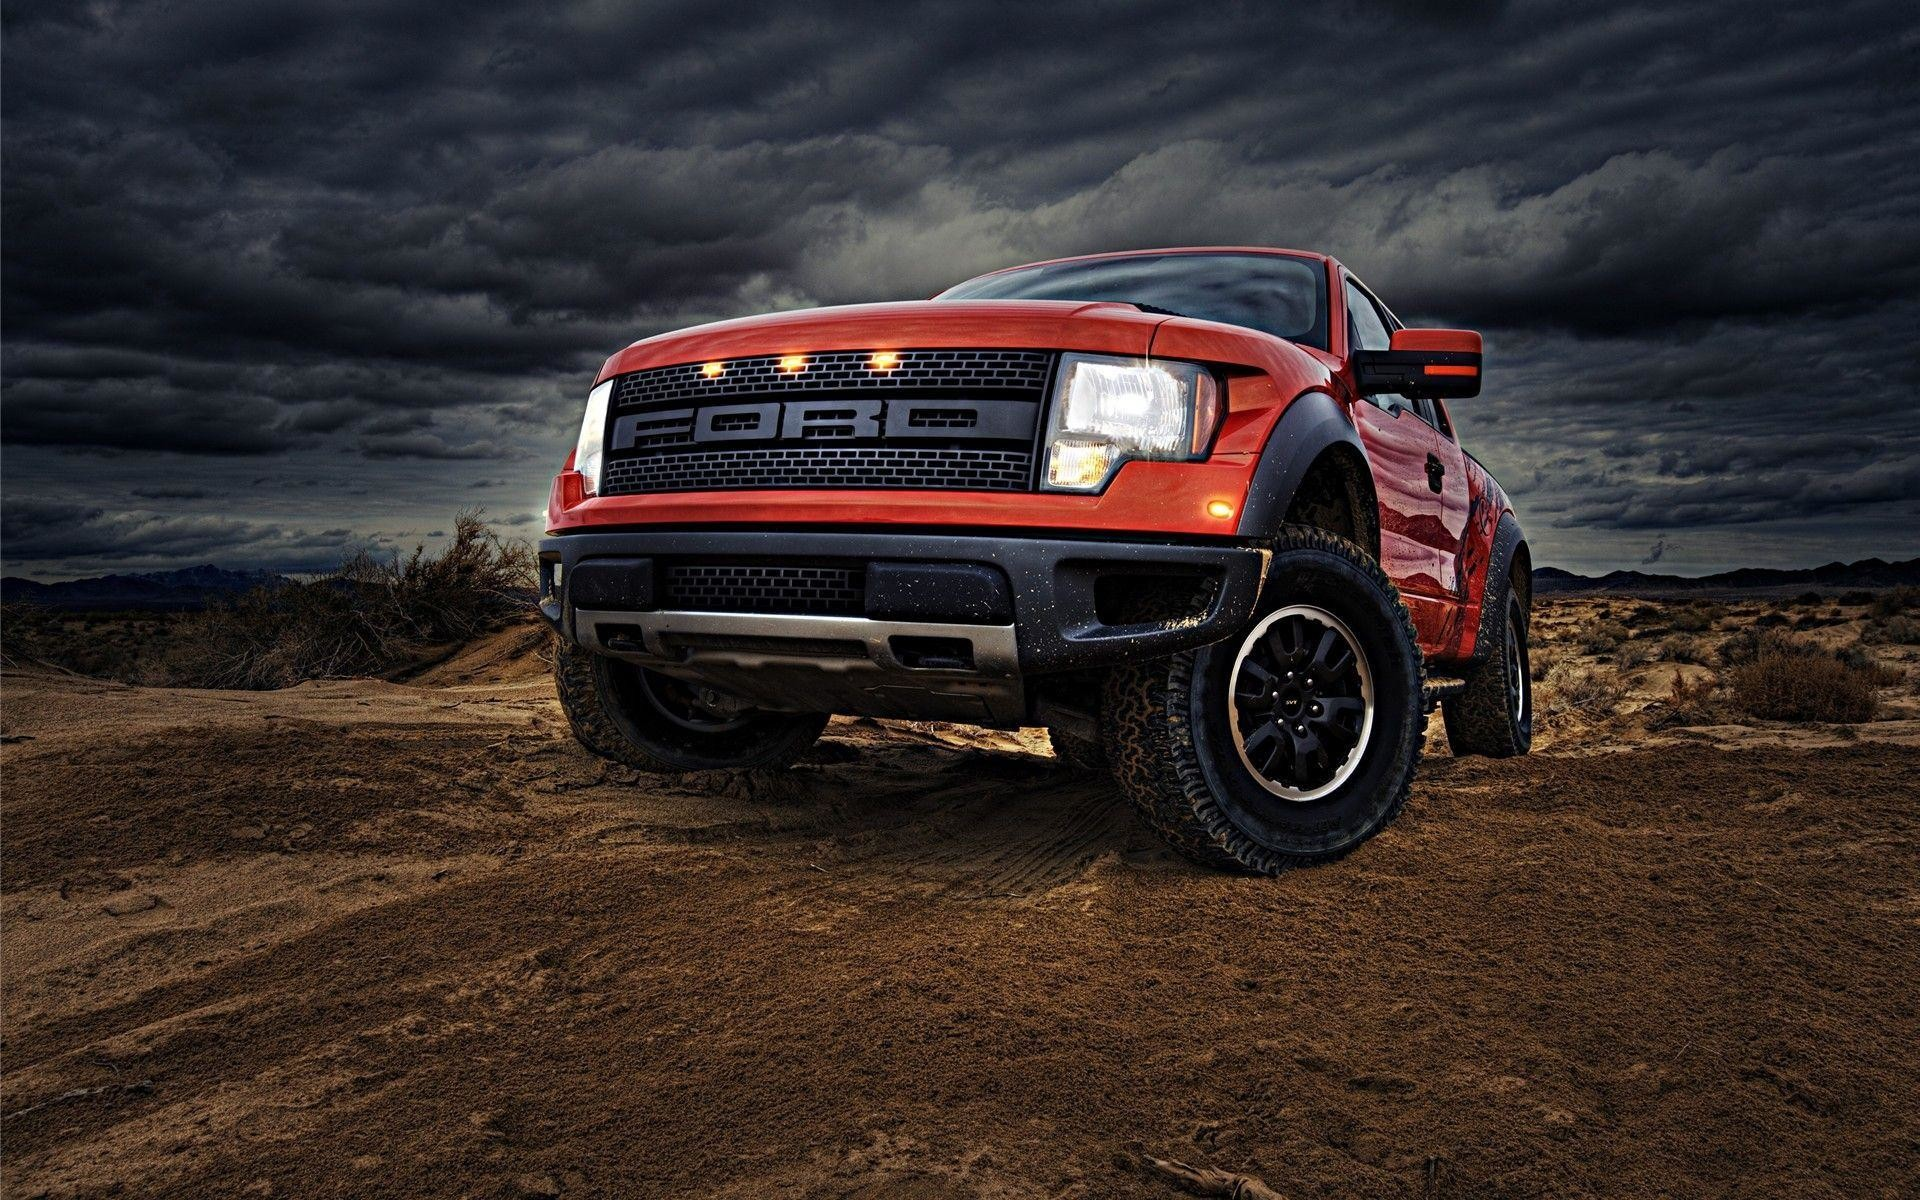 Cool Ford Truck Wallpapers Images & Pictures – Becuo